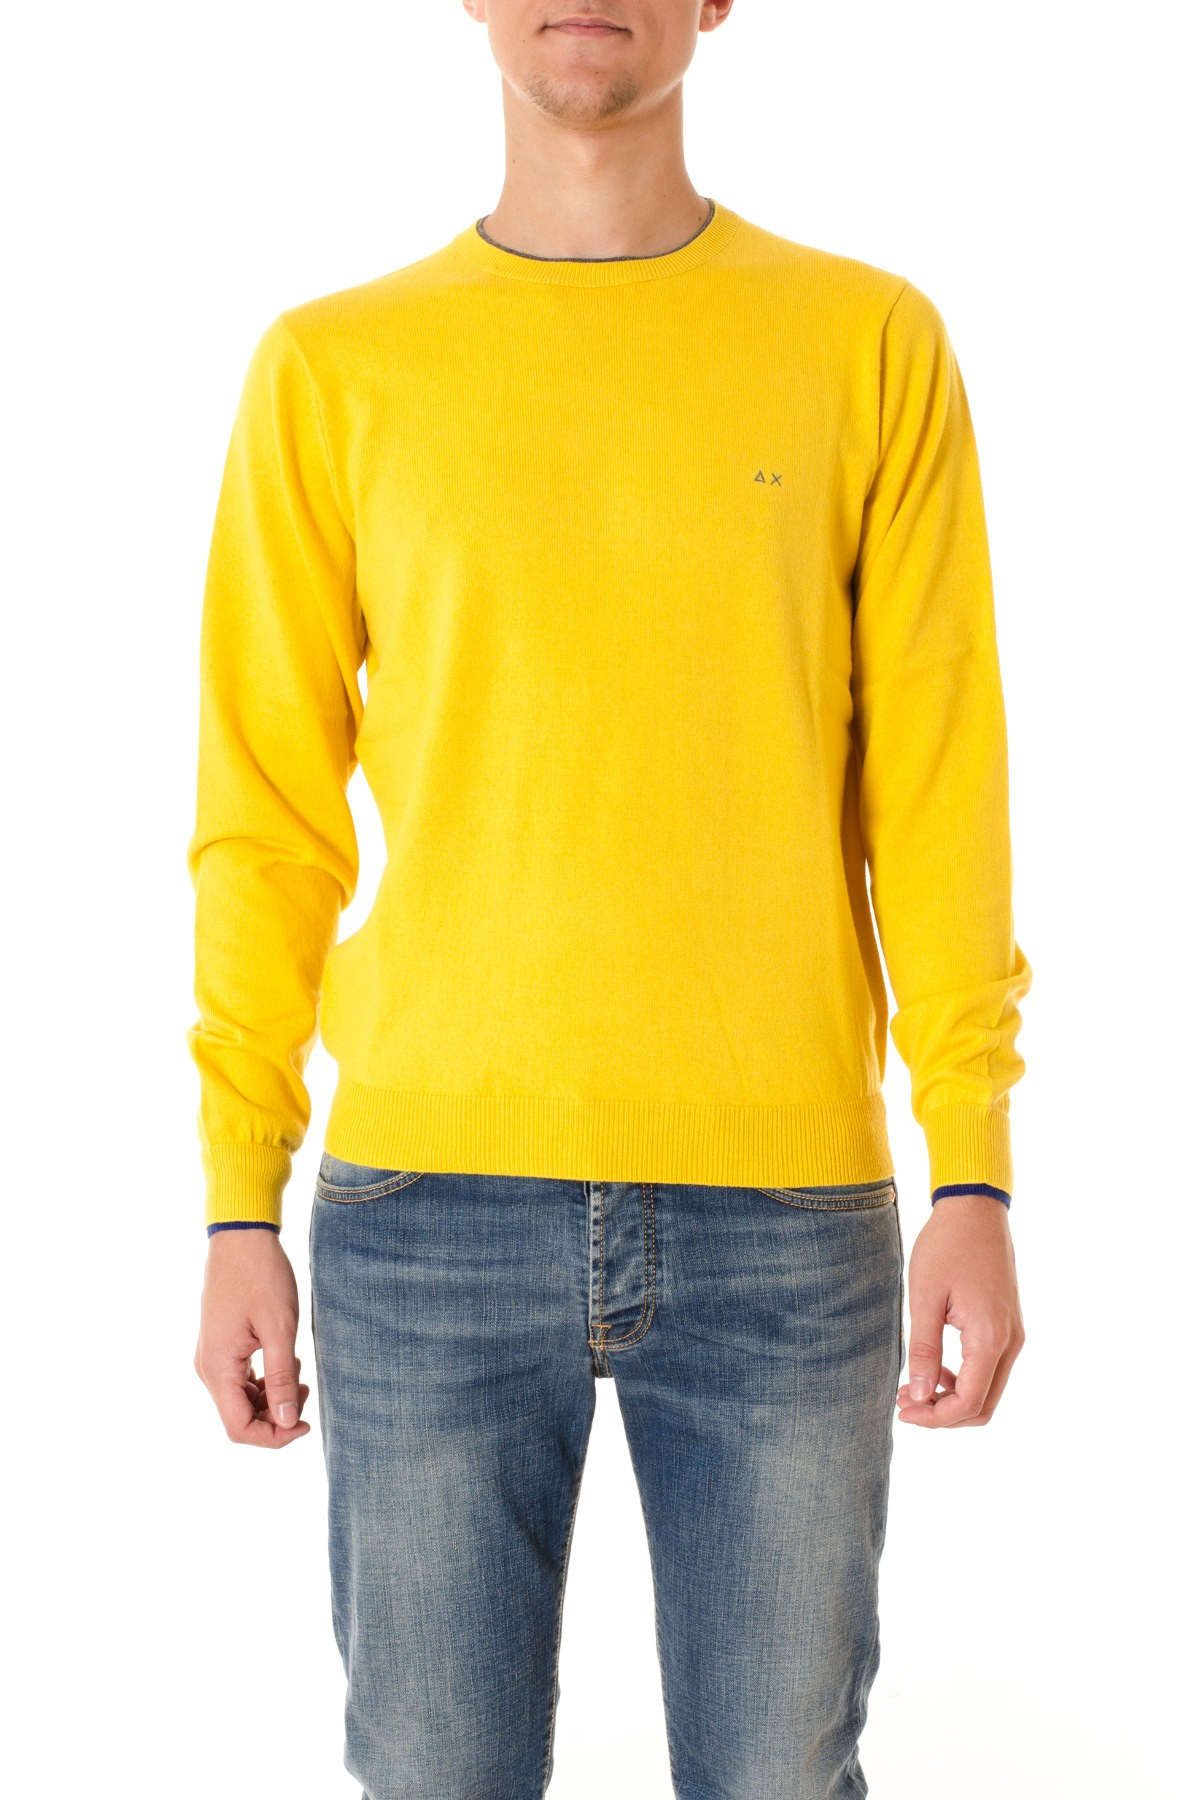 Yellow crew-neck sweater for men SUN68 F/W 16-17 - Rione Fontana